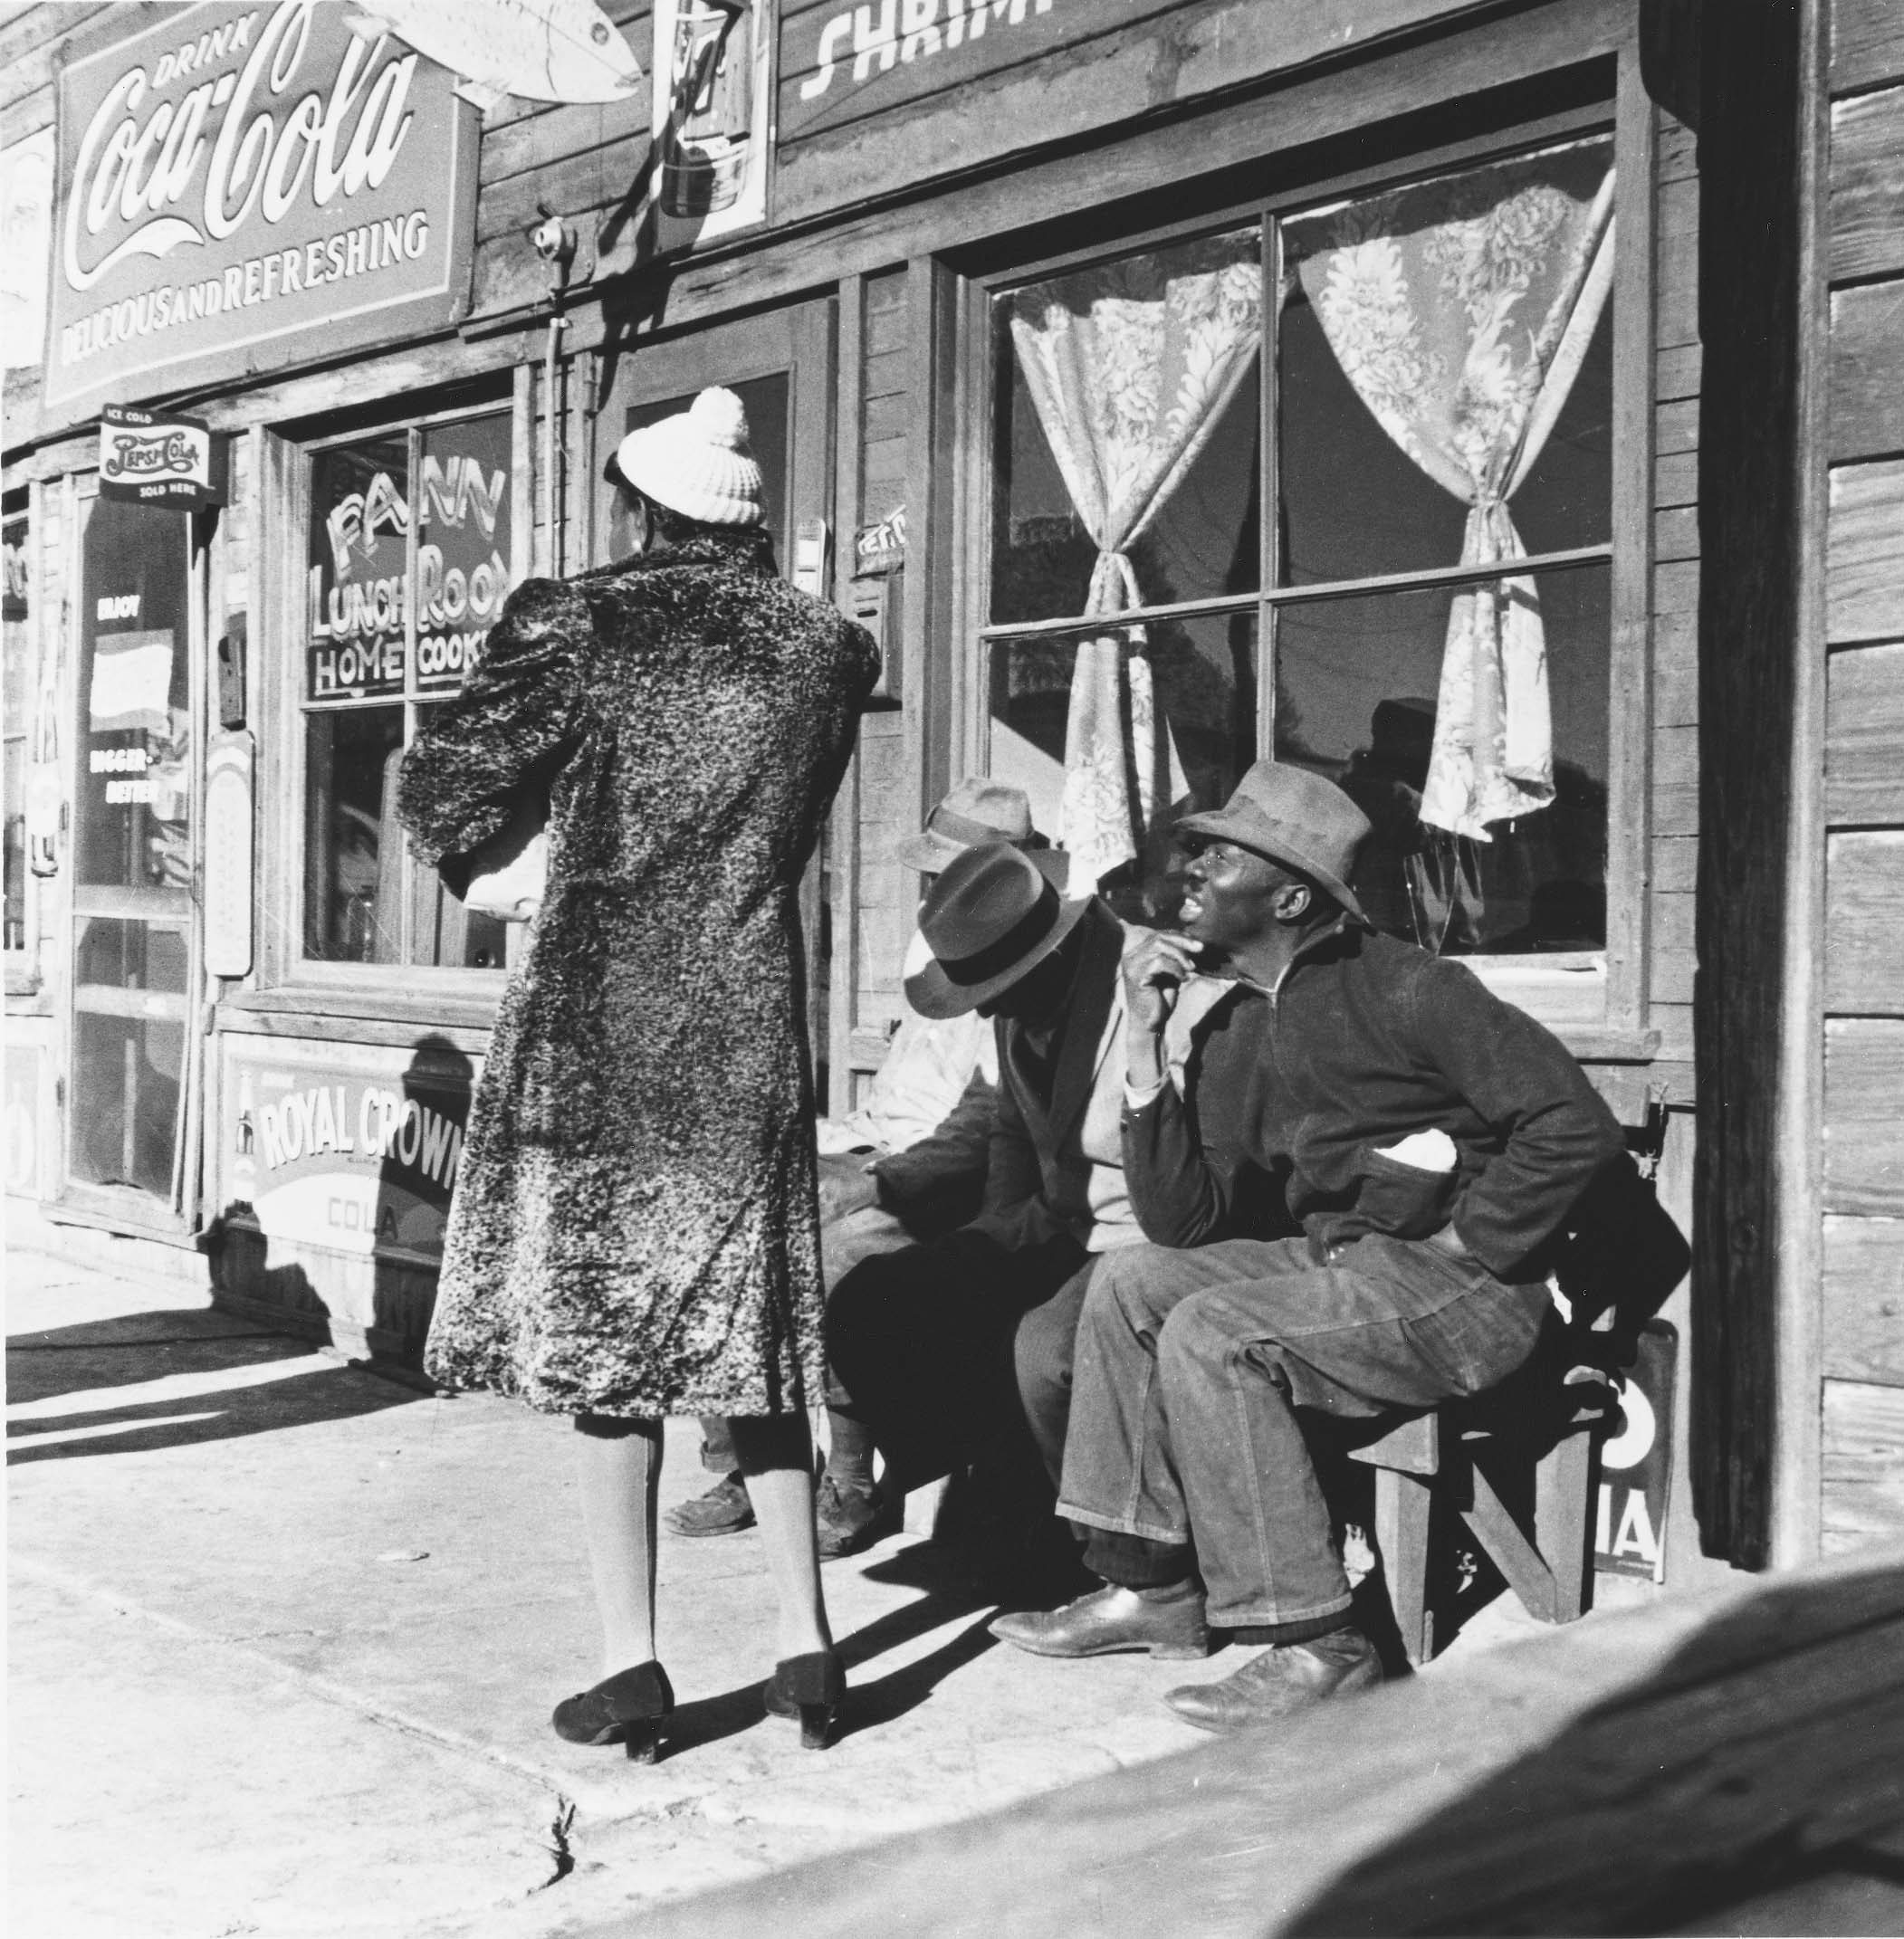 Mary McLeod Bethune Boulevard was packed with businesses and customers in the first half of the 20th century.